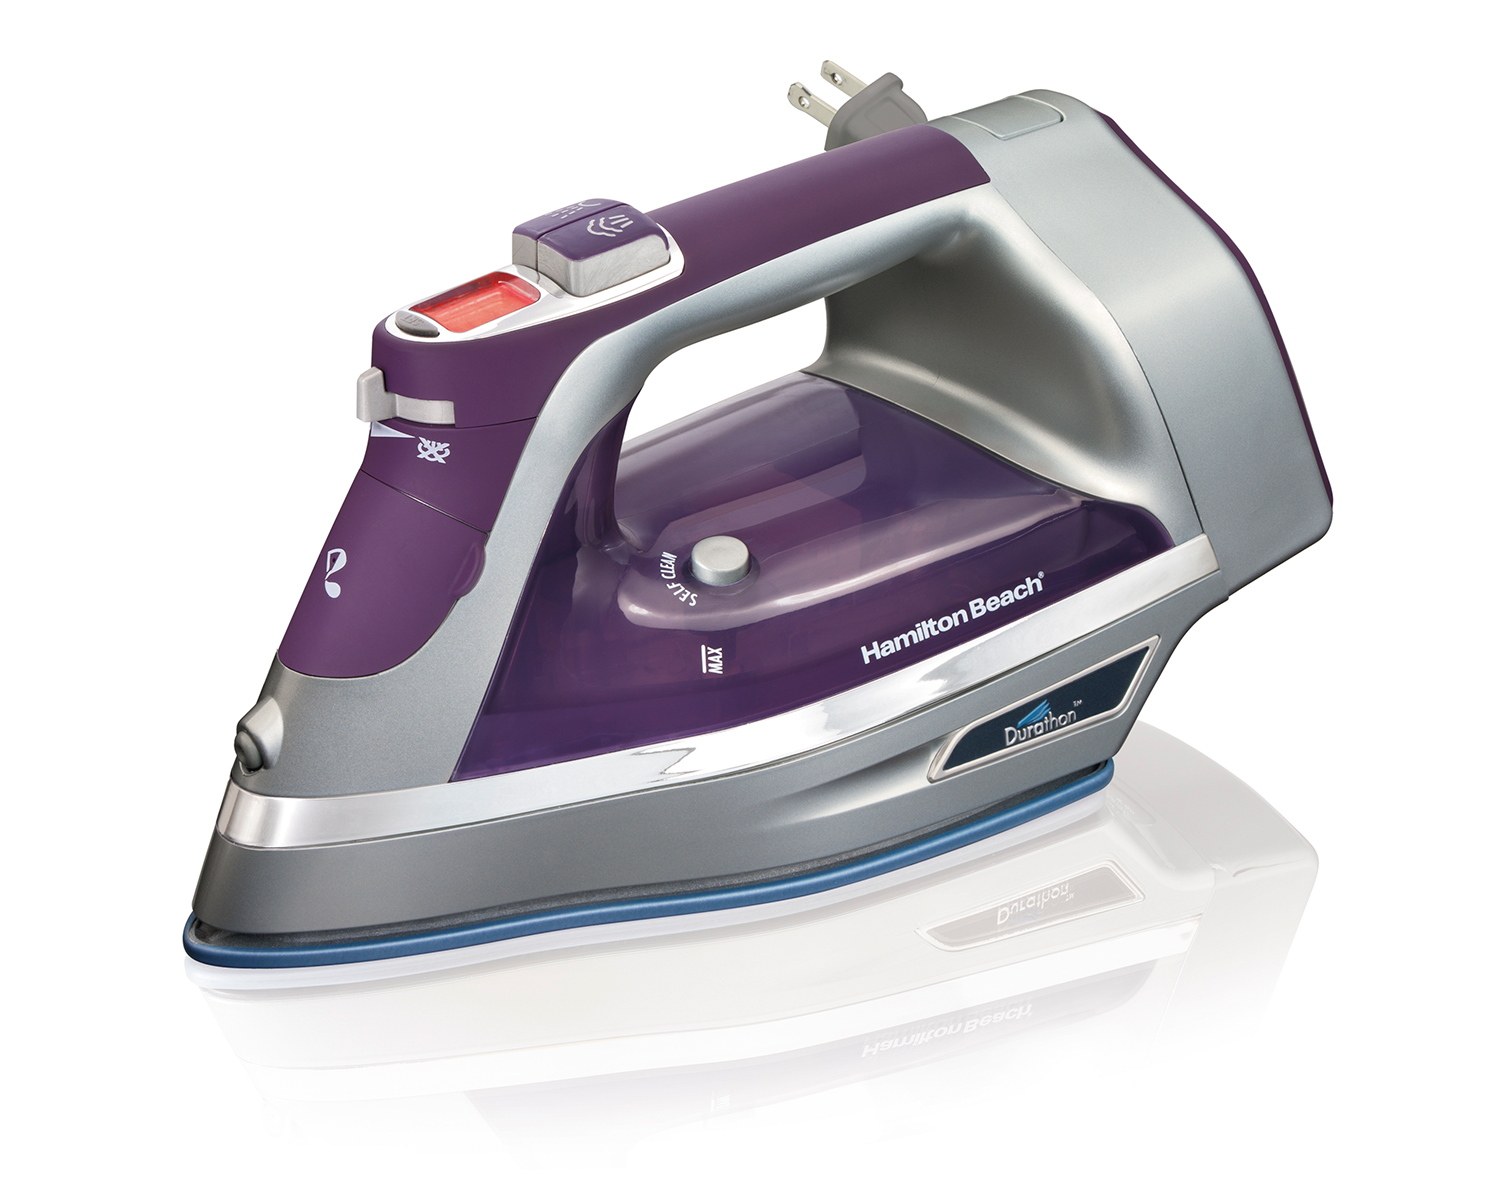 Durathon™ Digital Iron with Retractable Cord (19902R)